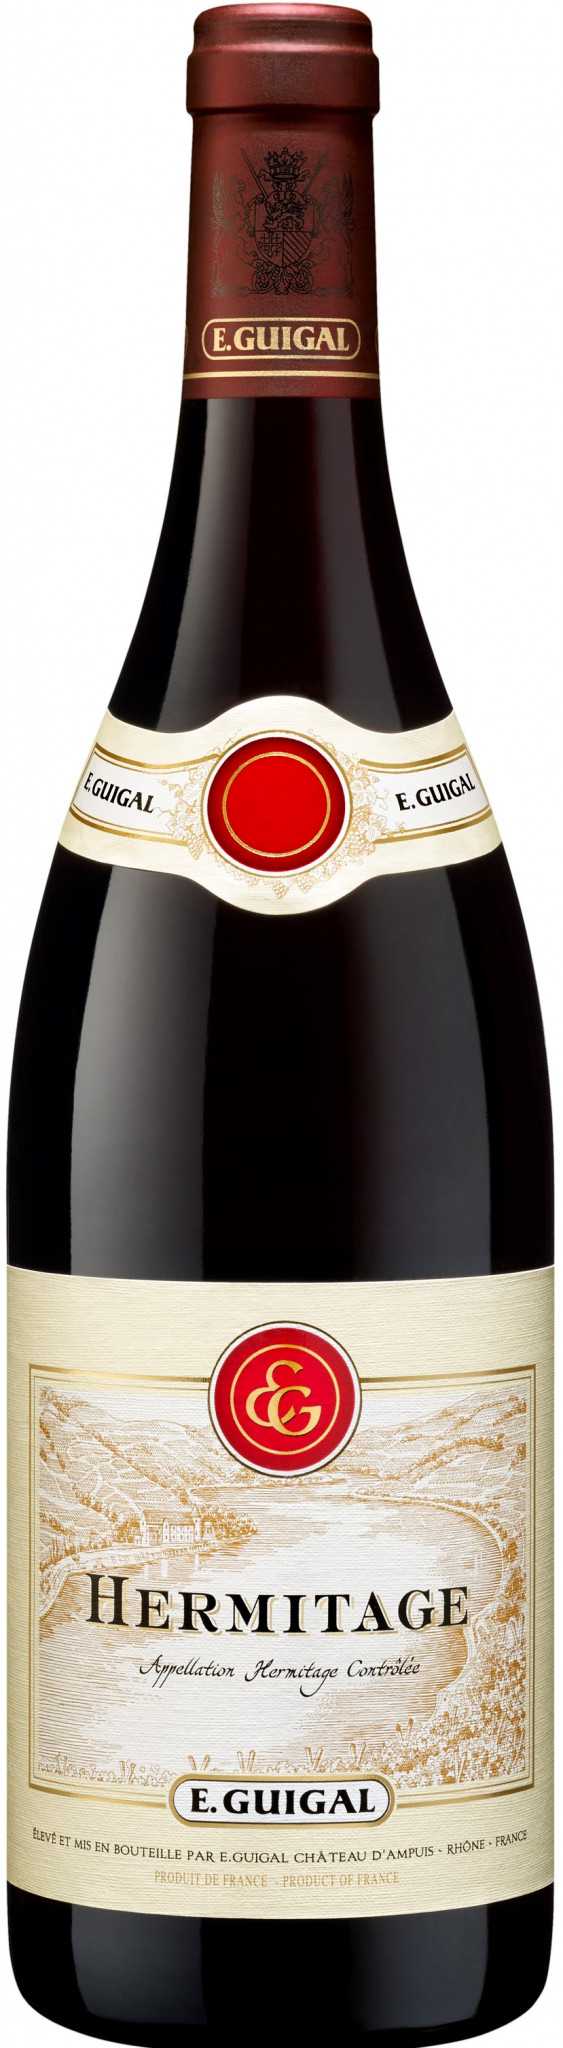 Guigal Hermitage Rouge Wineaffair